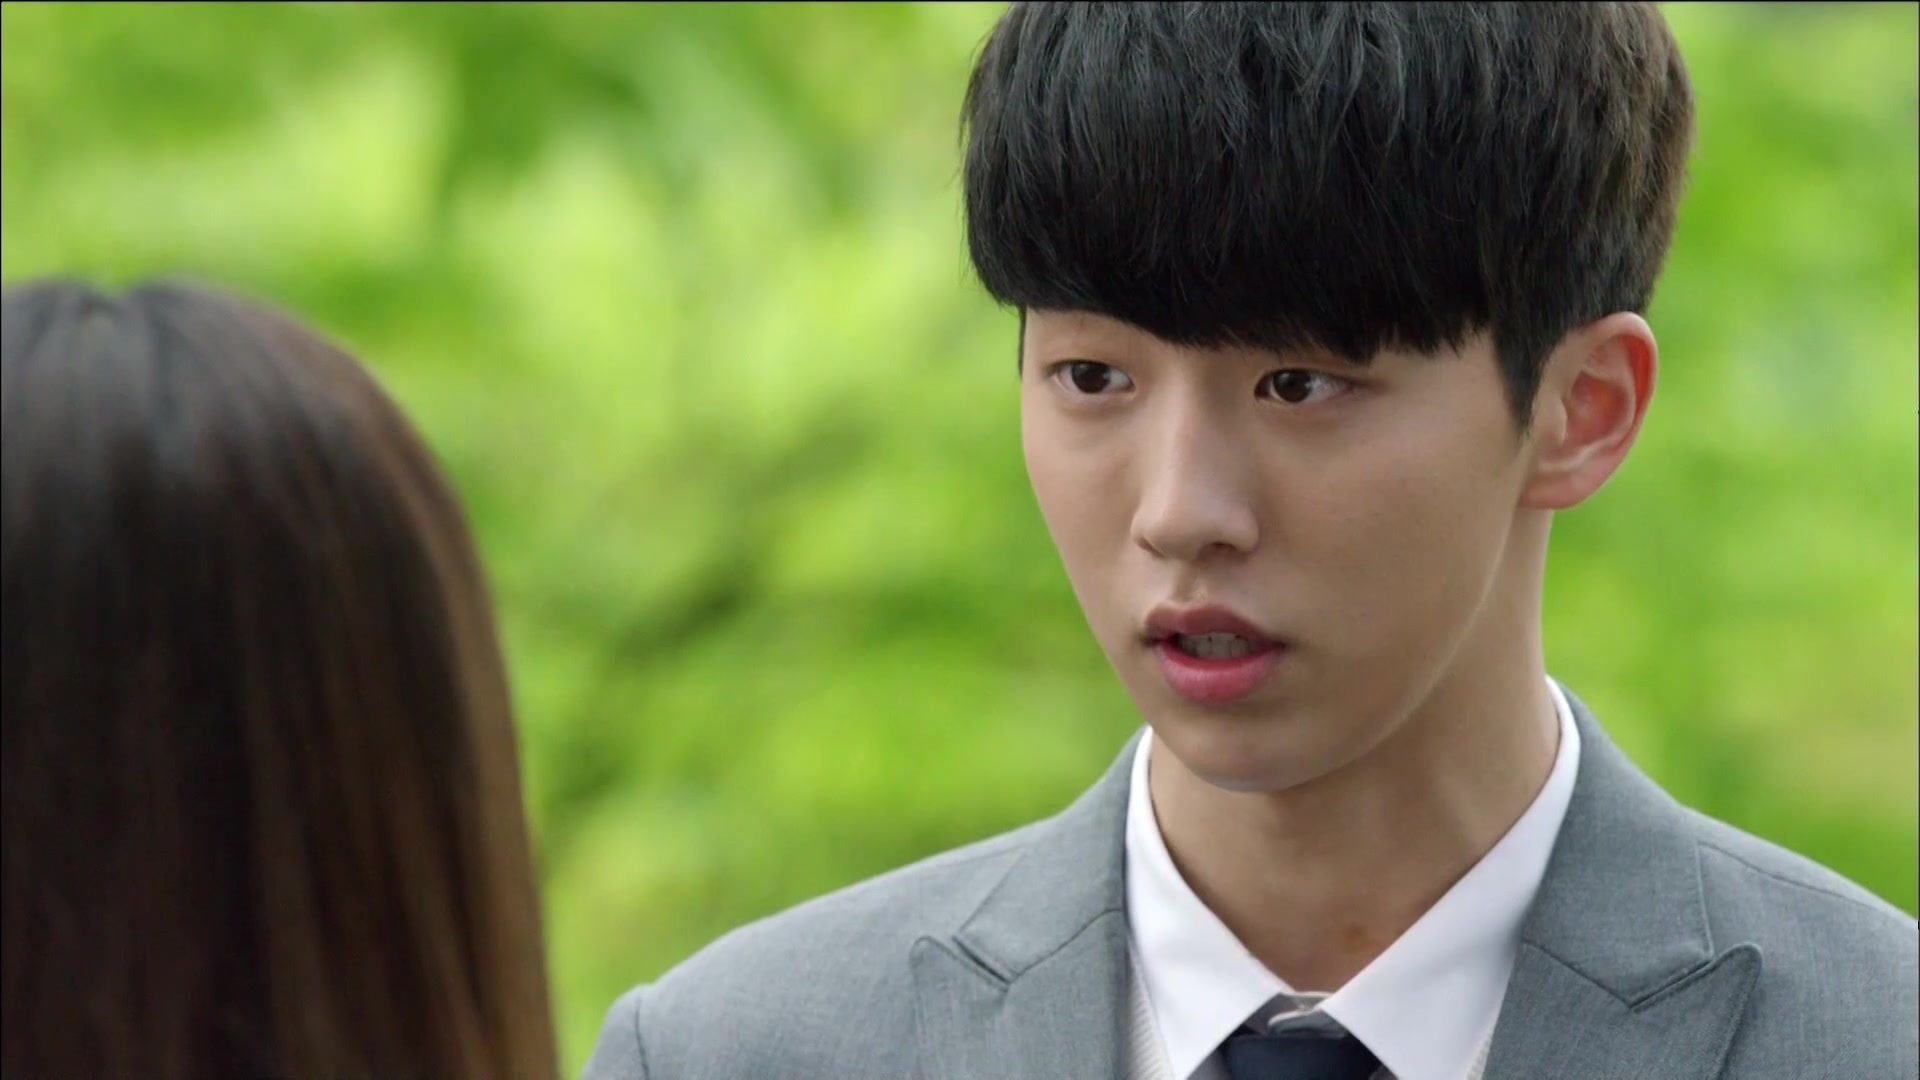 Who Are You: School 2015 Episode 3